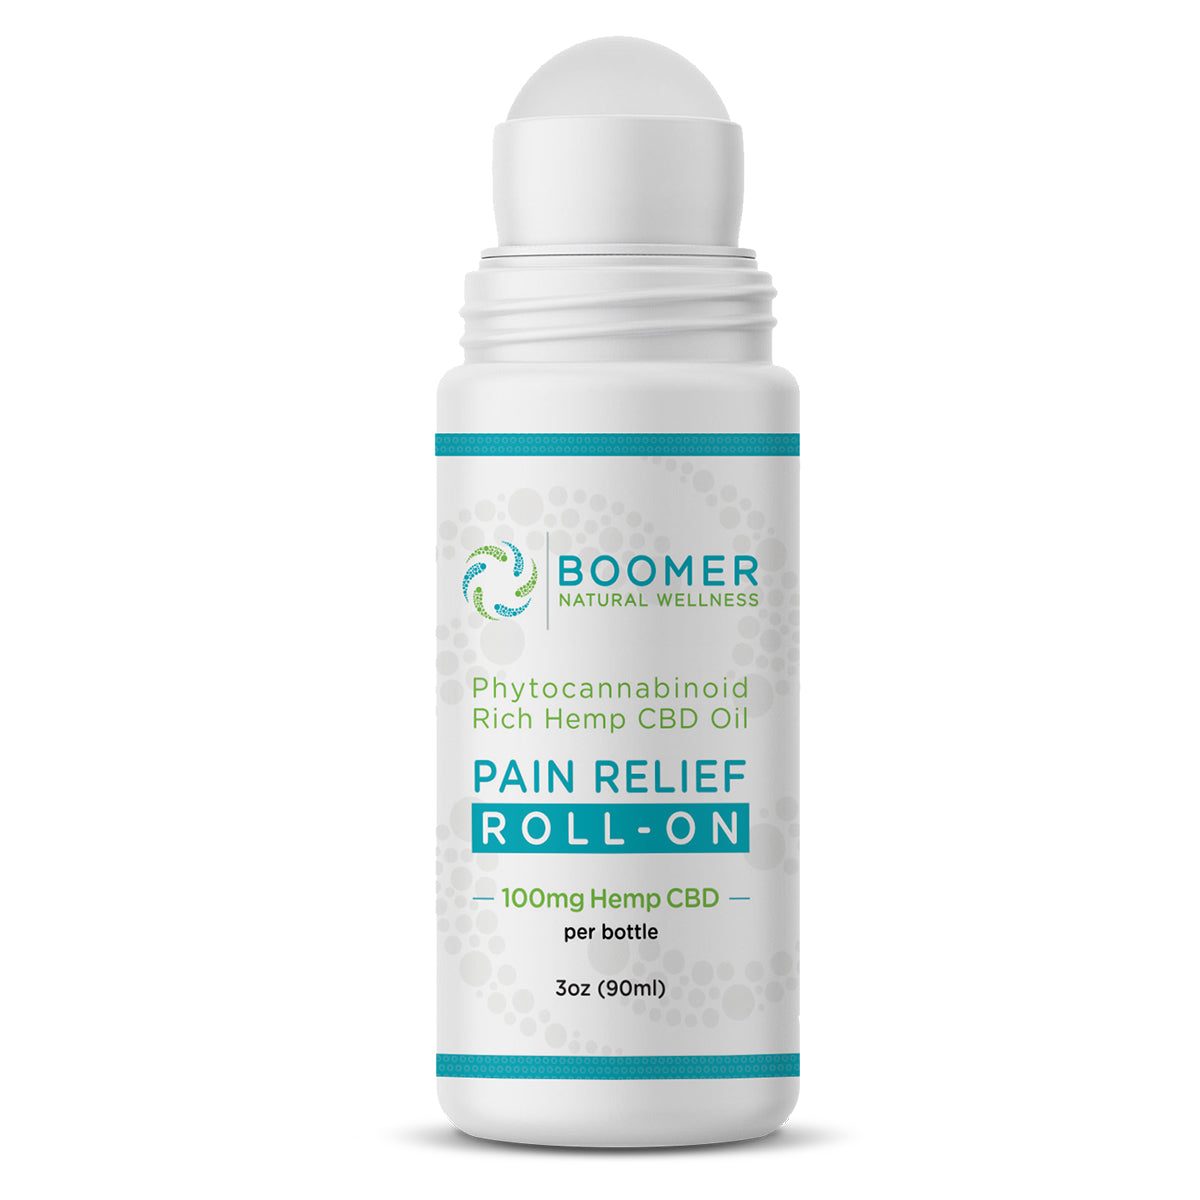 Pain Relief Roll On With Hemp CBD